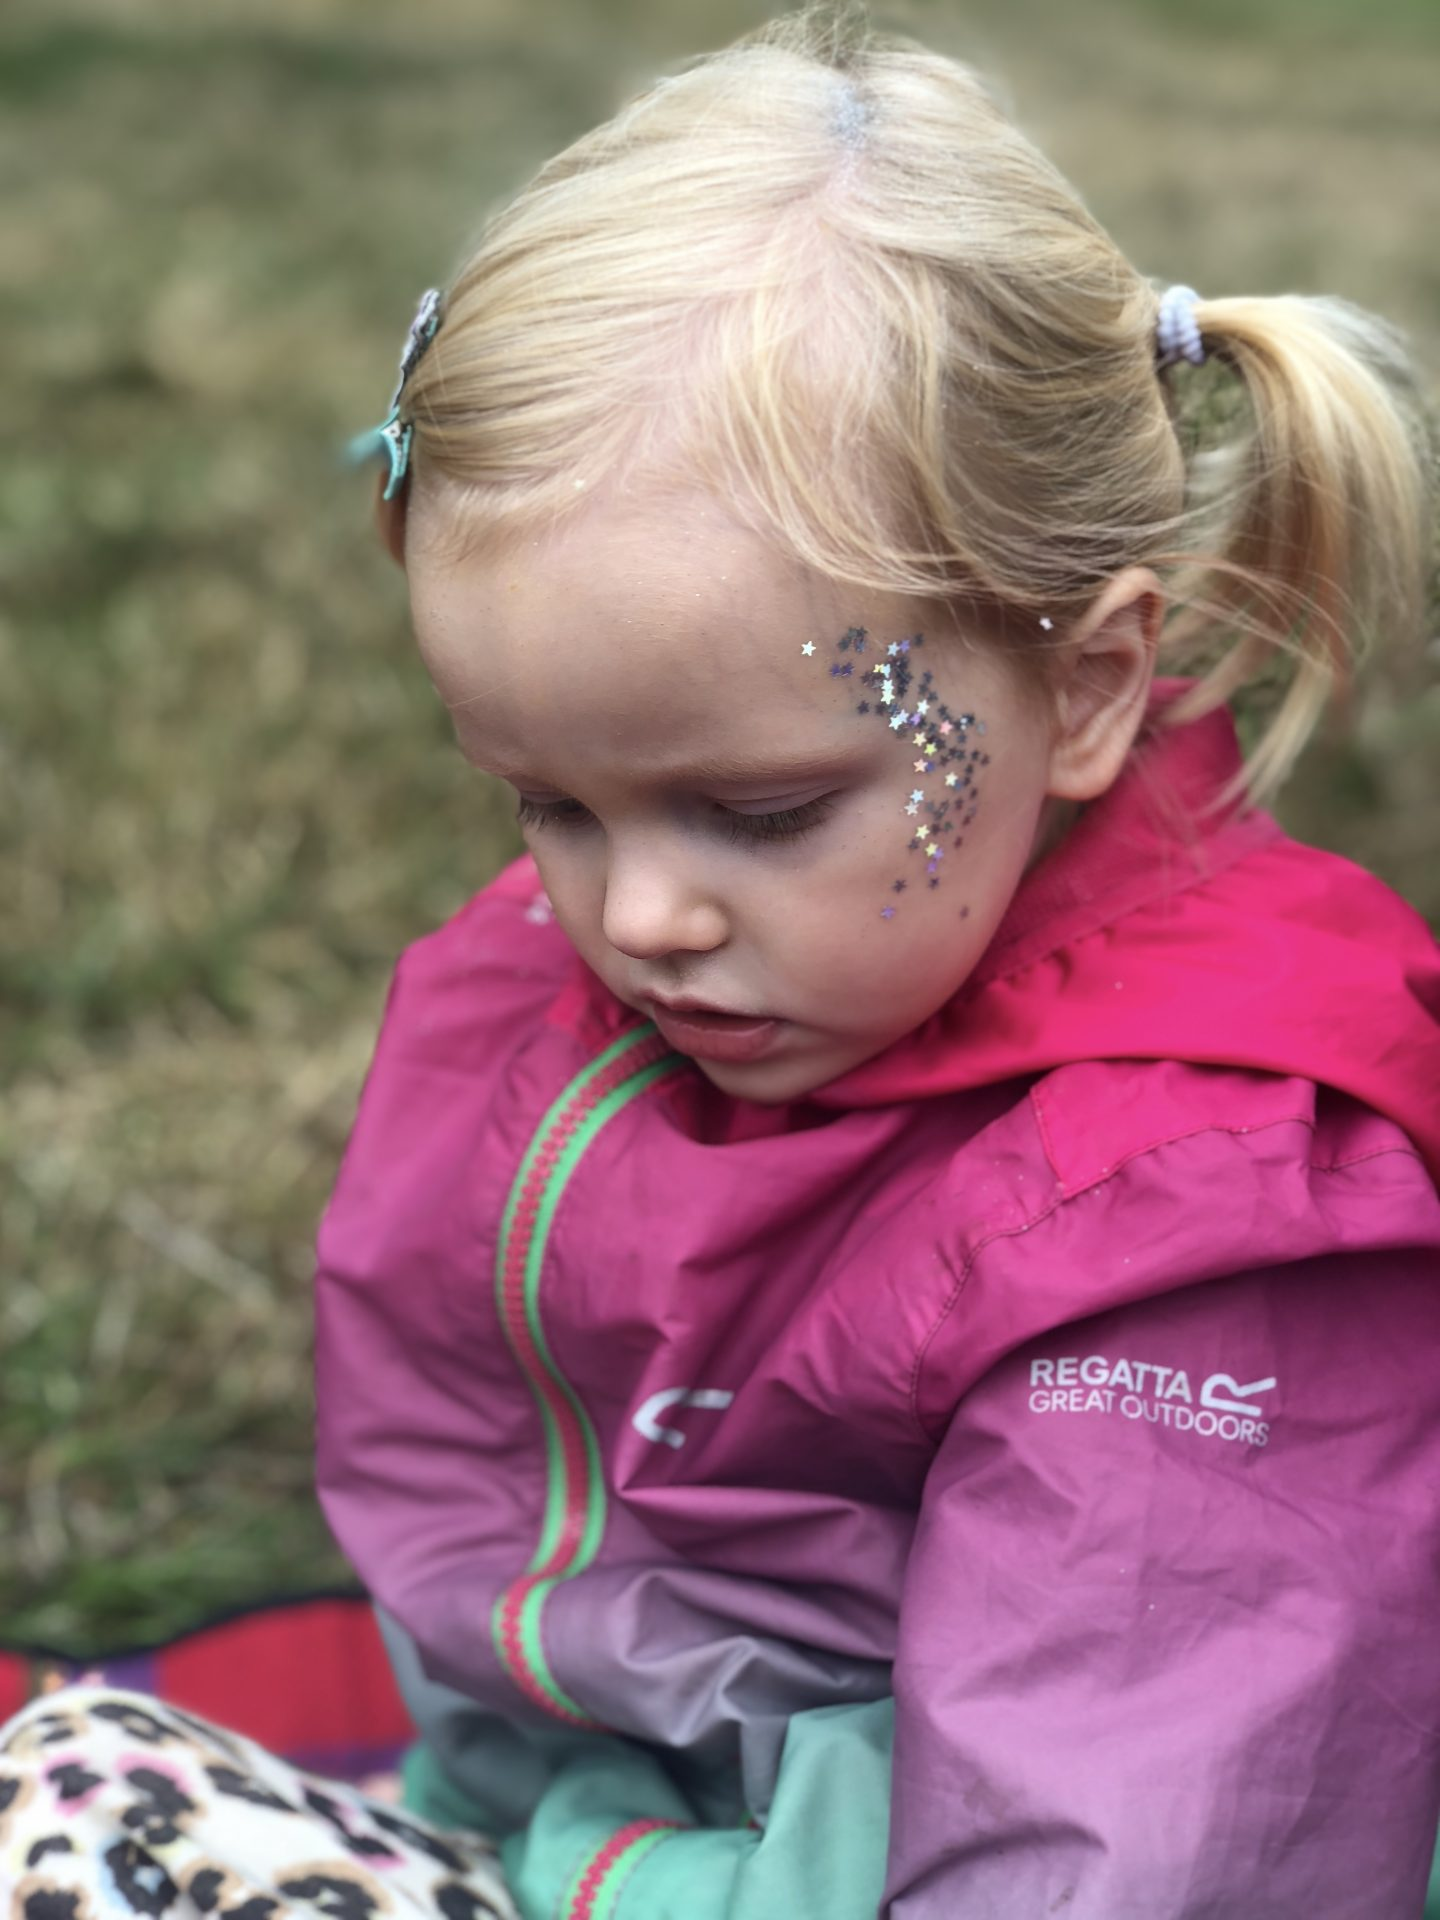 A blonde girl is wearing a waterproof rain jacket and has silver stars on her face.